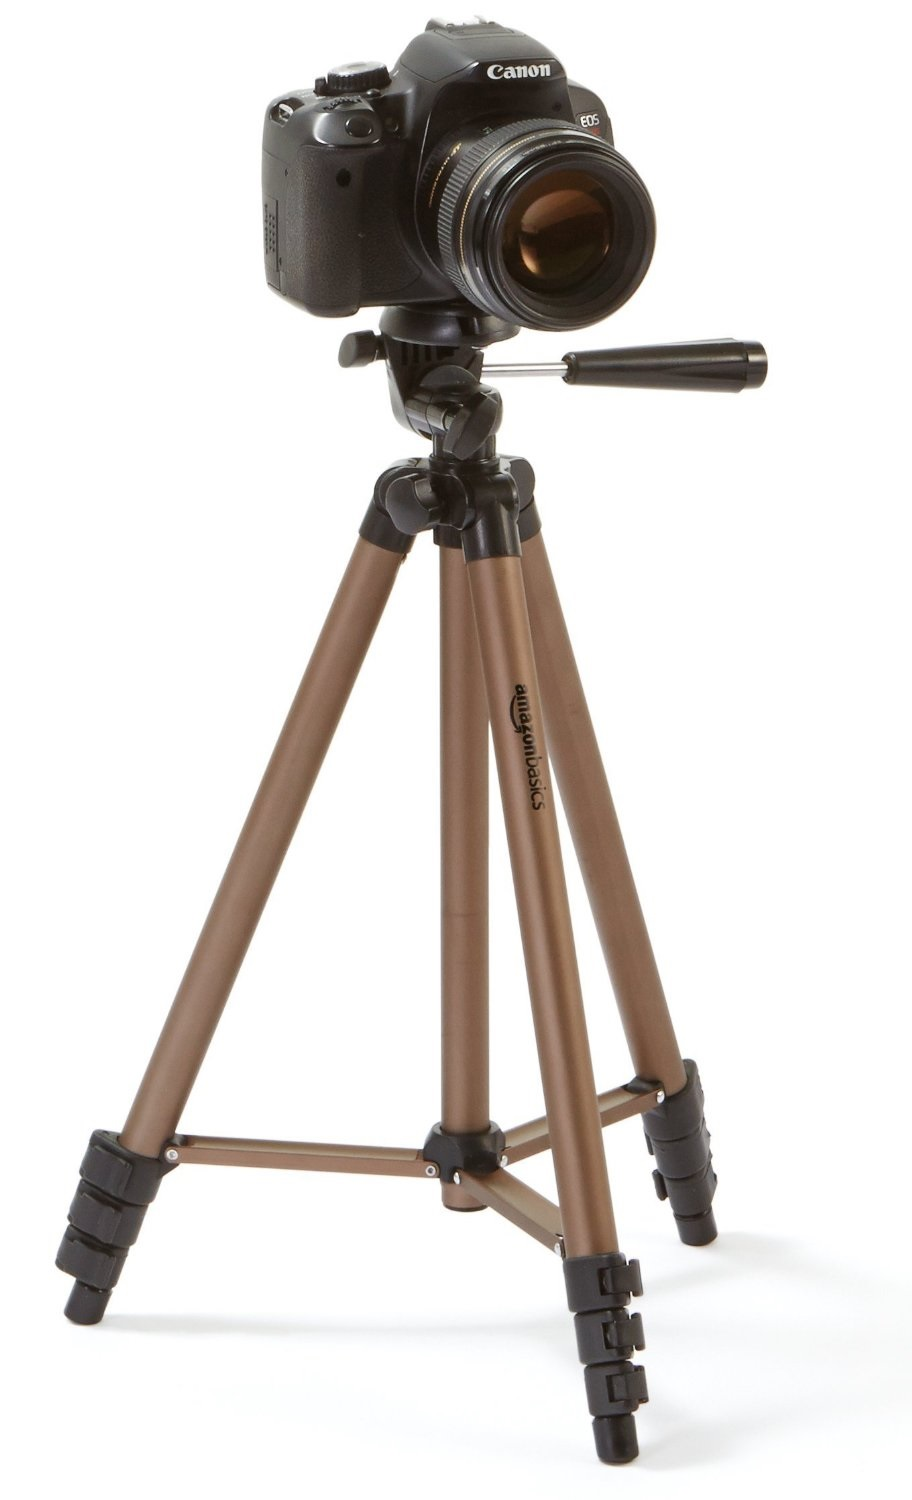 Amazon Basics tripod with DSLR camera mounted. What you would need to utilize in your setup.